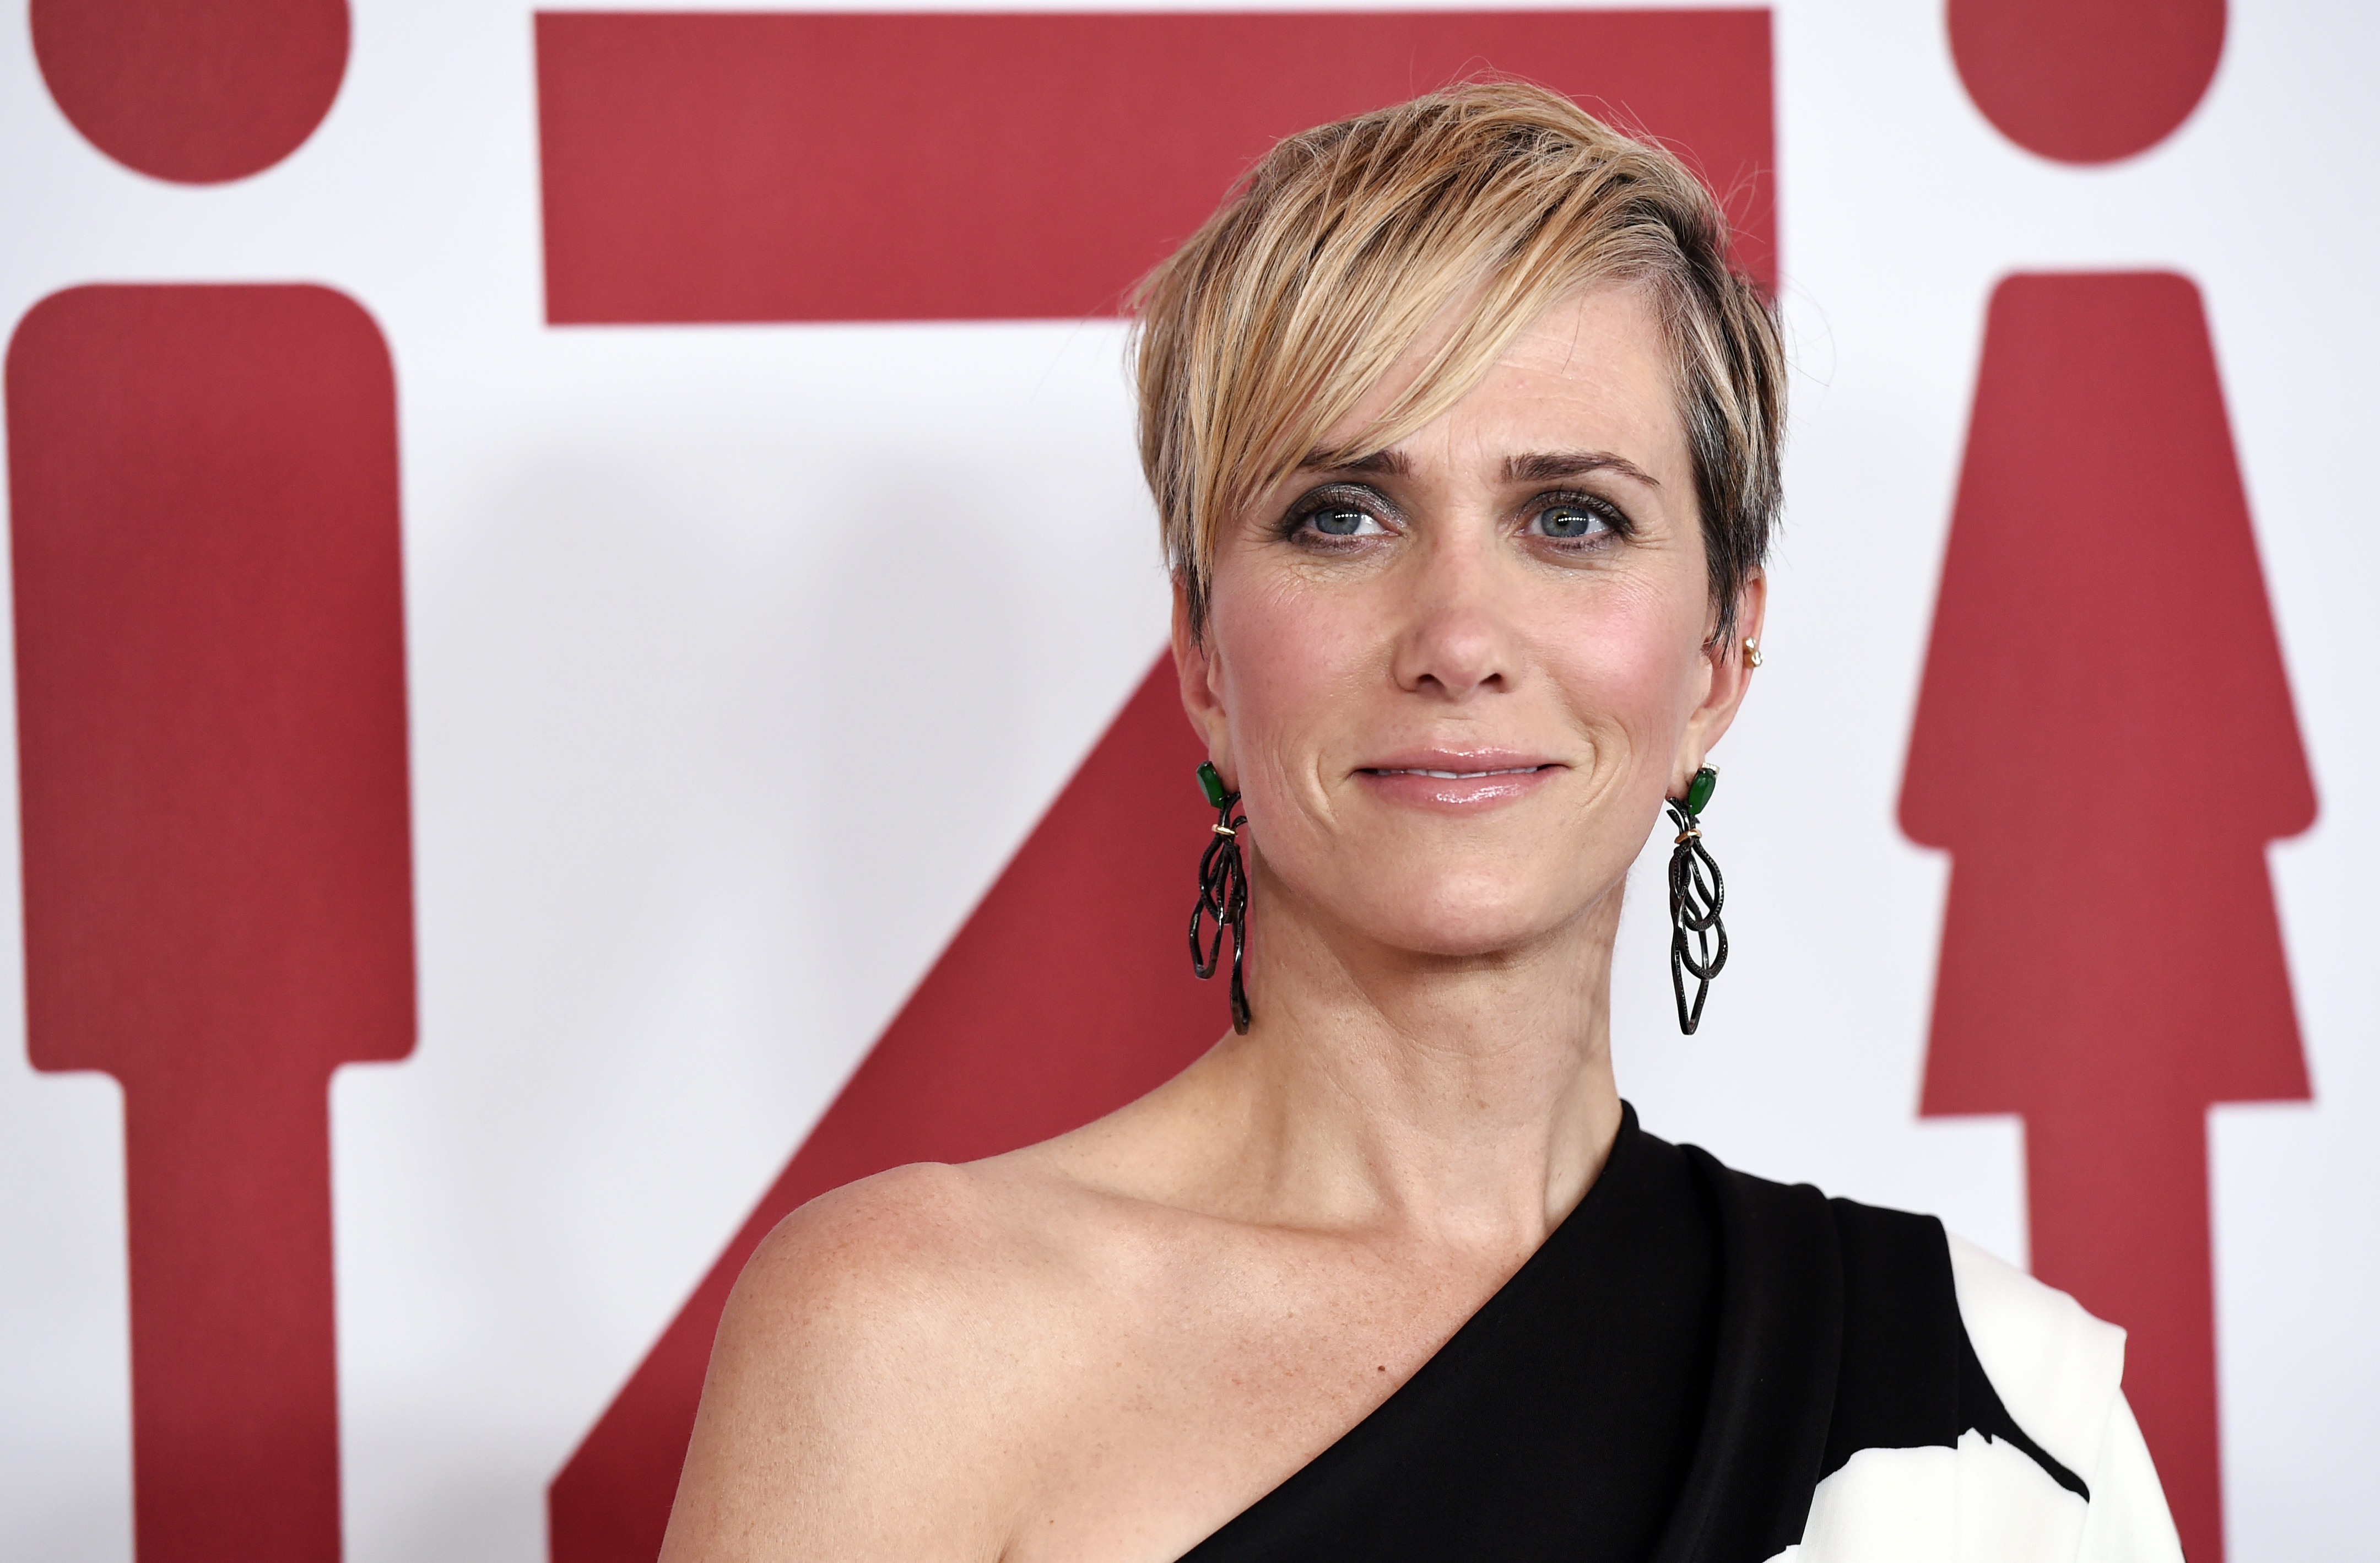 Kristen Wiig film pulls out of Georgia over 'heartbeat' abortion ban